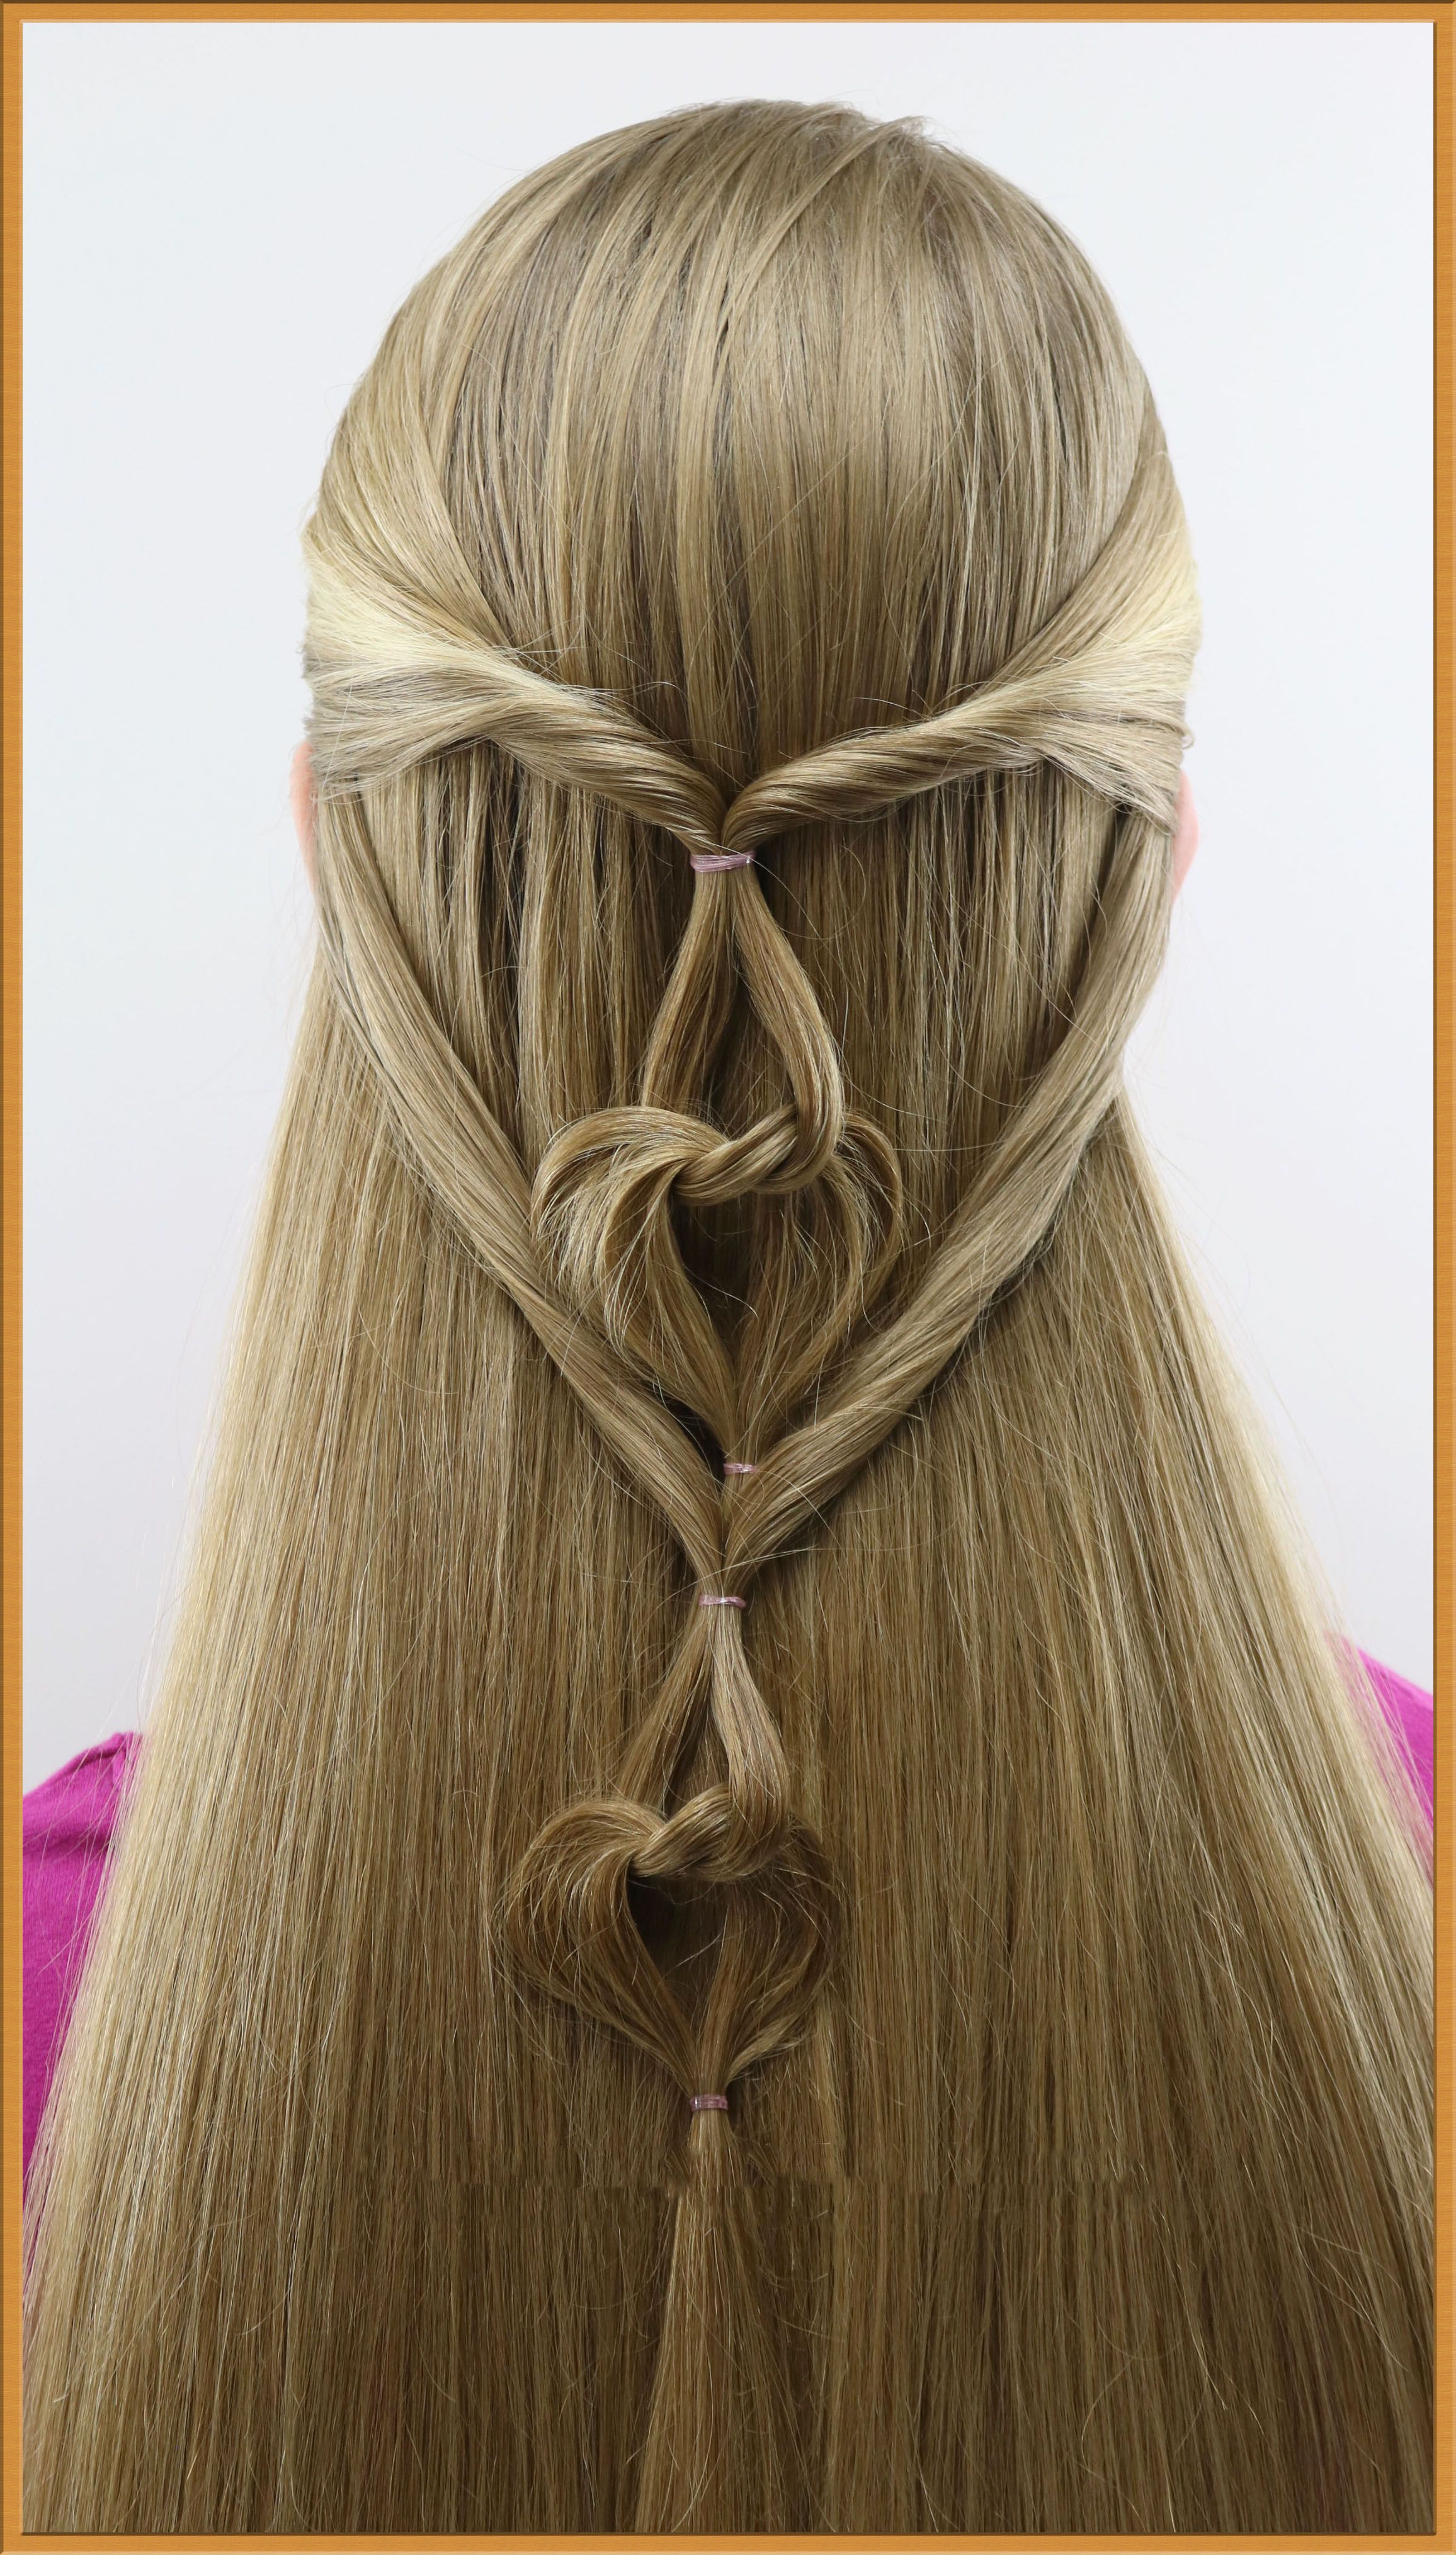 3 Easy Ways To Make Hair Styles Faster – 2021